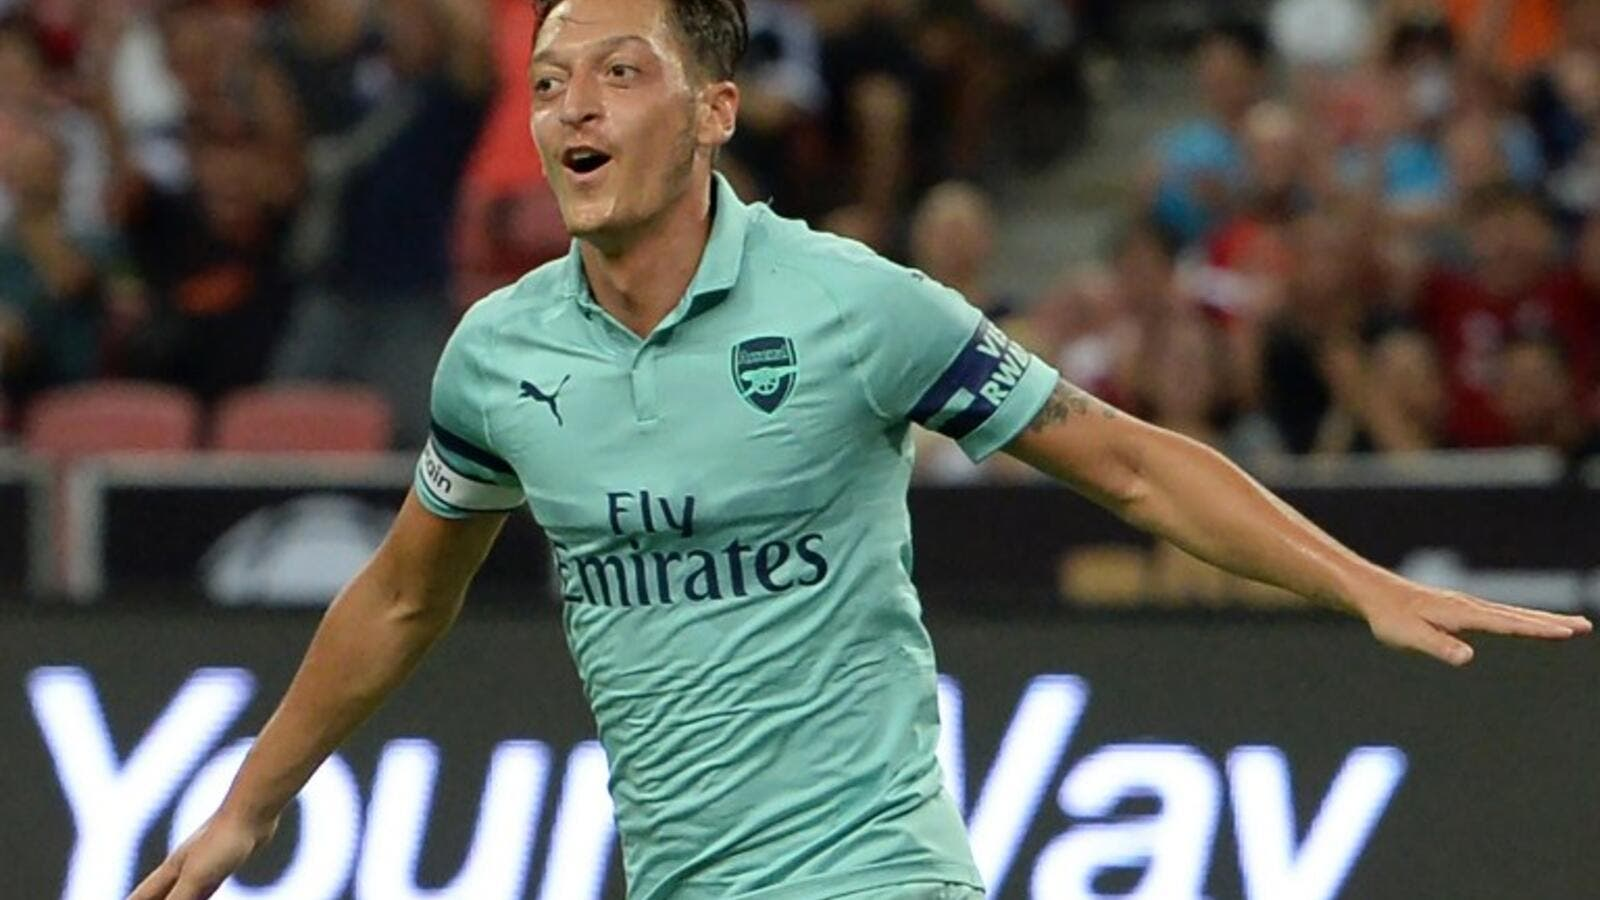 Mesut Ozil of Arsenal celebrates after scoring during the International Champions Cup football match between Arsenal and Paris Saint-Germain in Singapore on July 28, 2018.